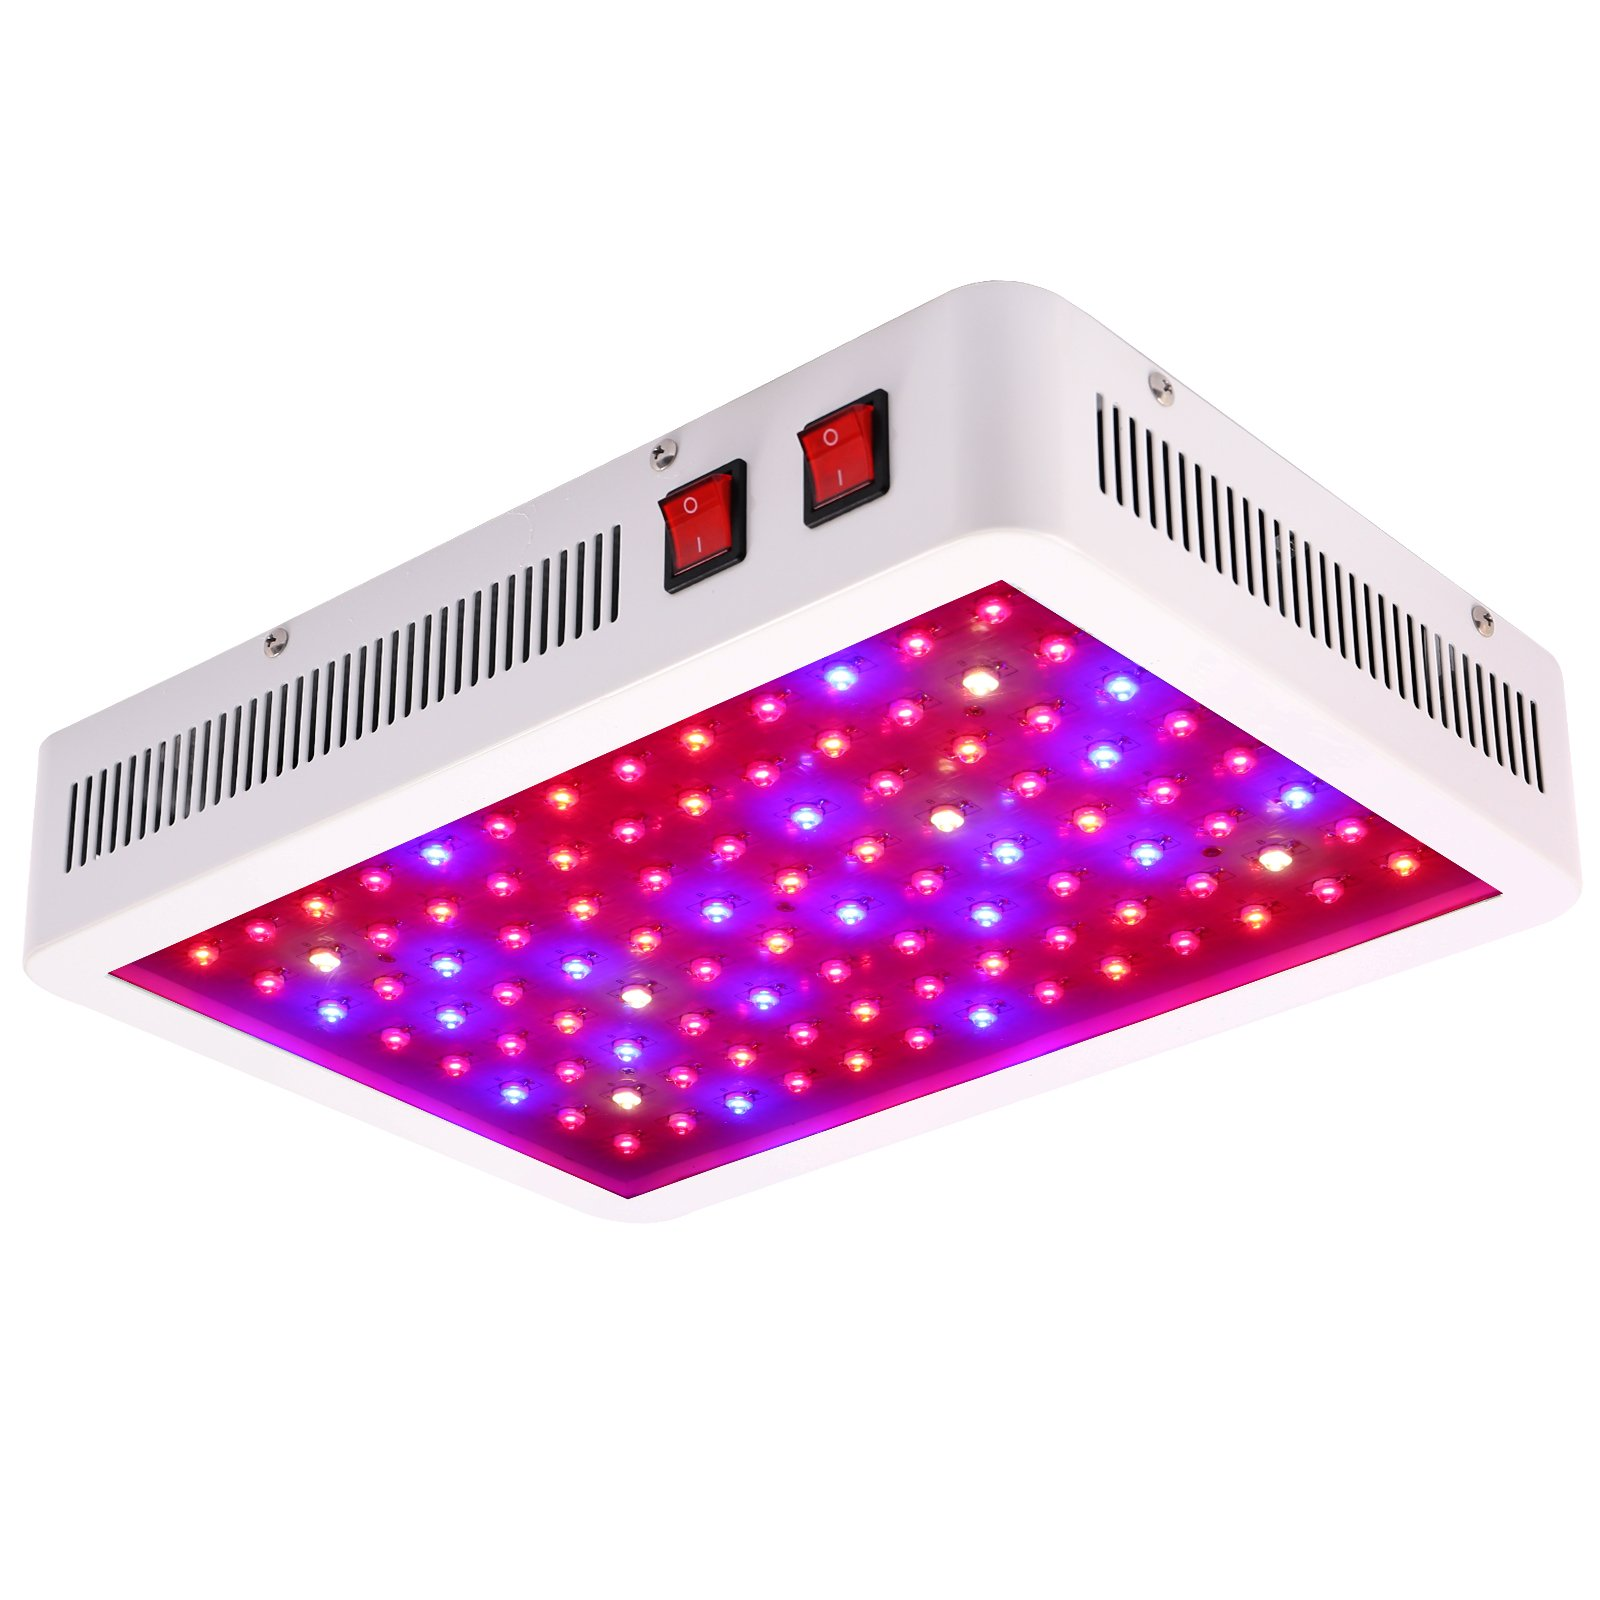 SYGAVLED 1000W LED Grow Light - High Yield - Full Spectrum Indoor Hydroponic Plants Veg Bloom Panel Lamp by SYGAVLED